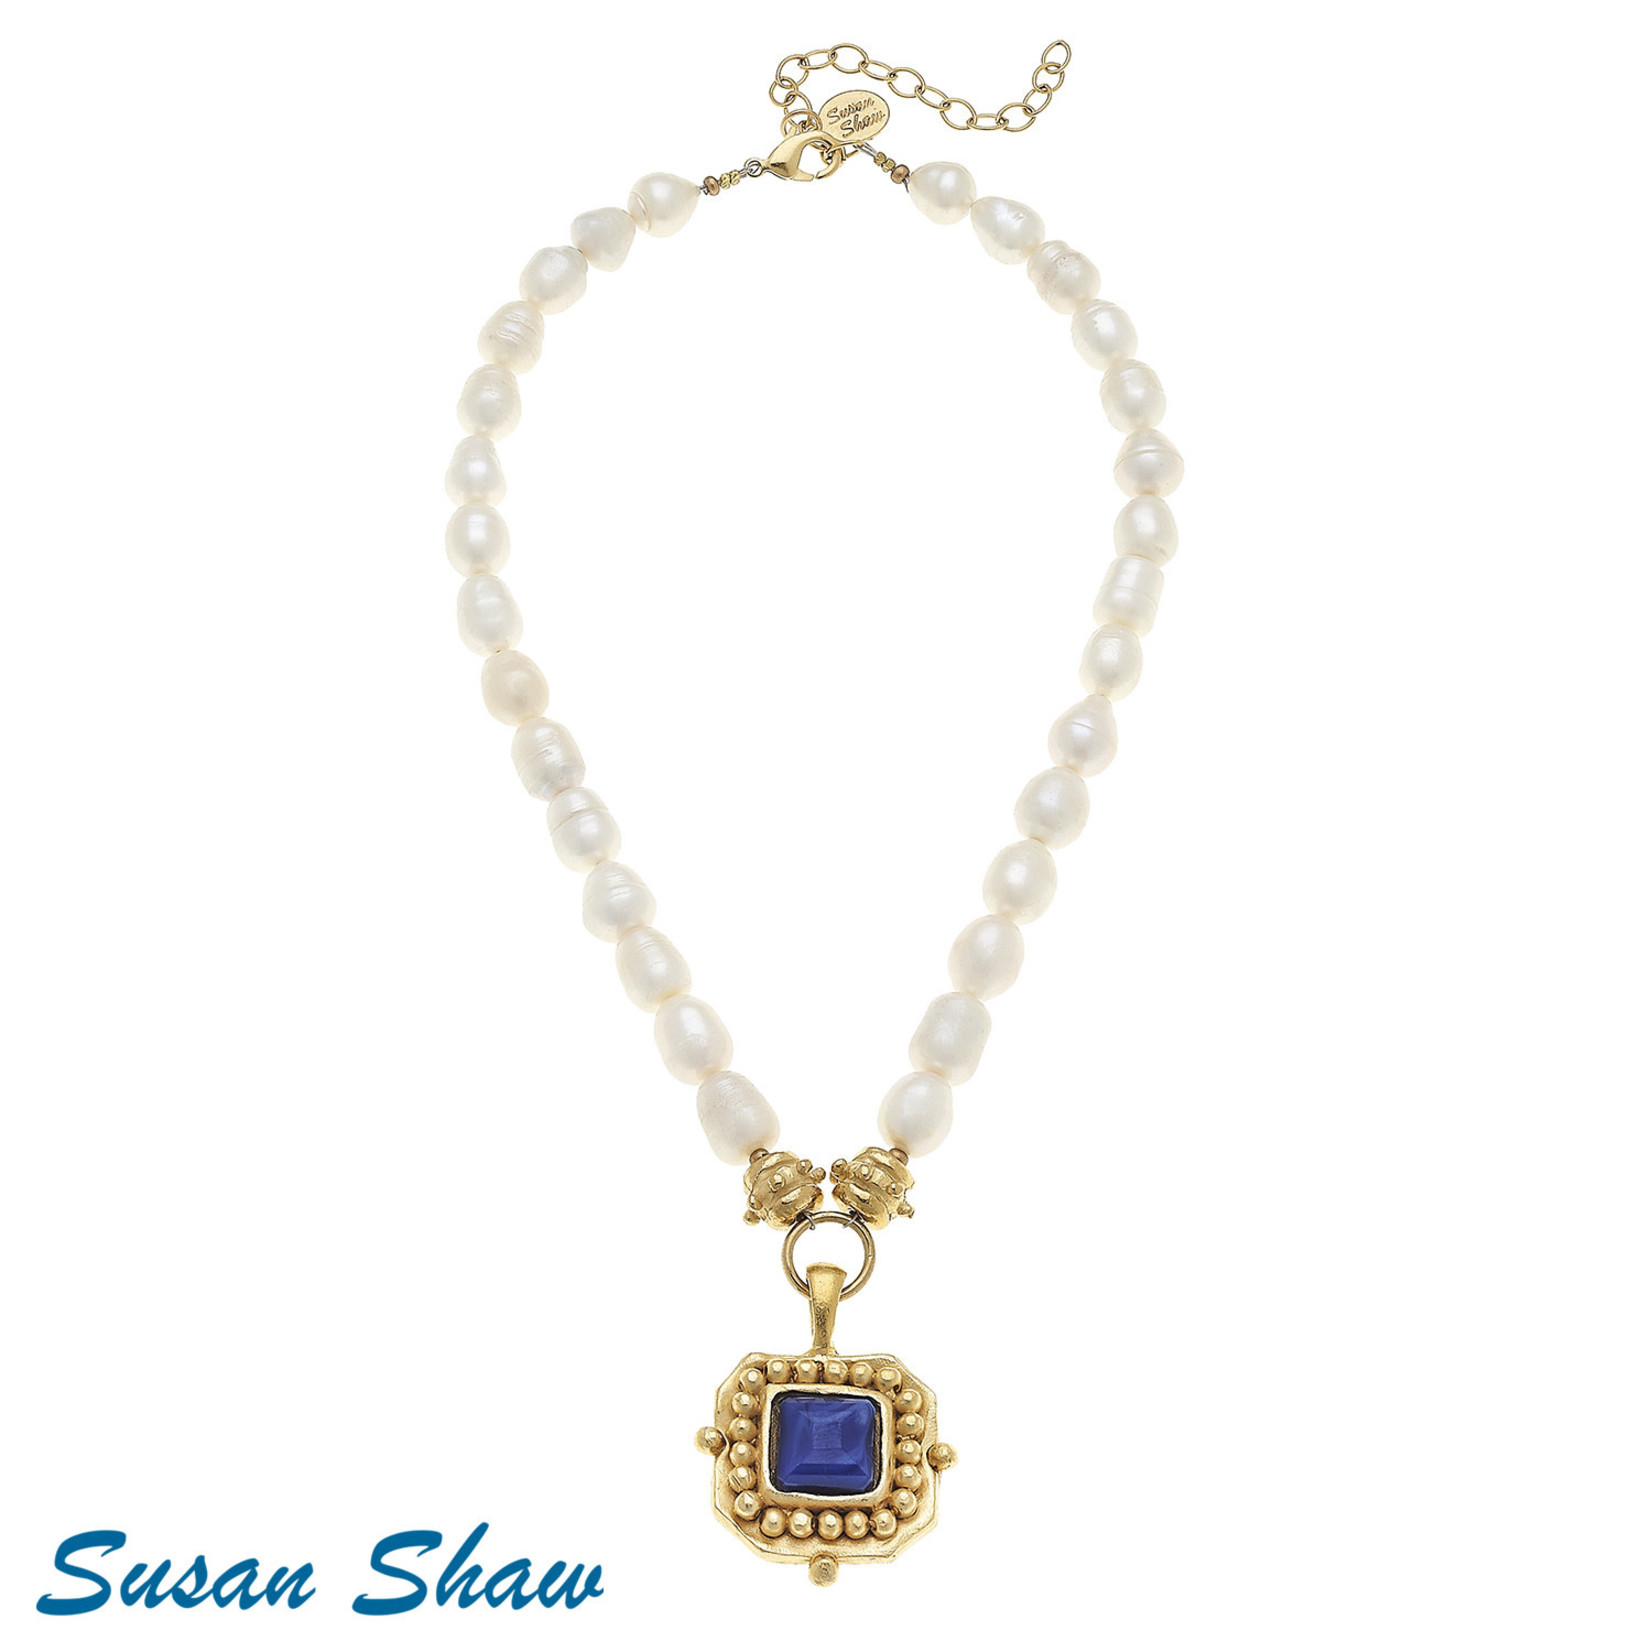 Susan Shaw Susan Shaw Gold Blue Crystal Pendant on Pearl Necklace